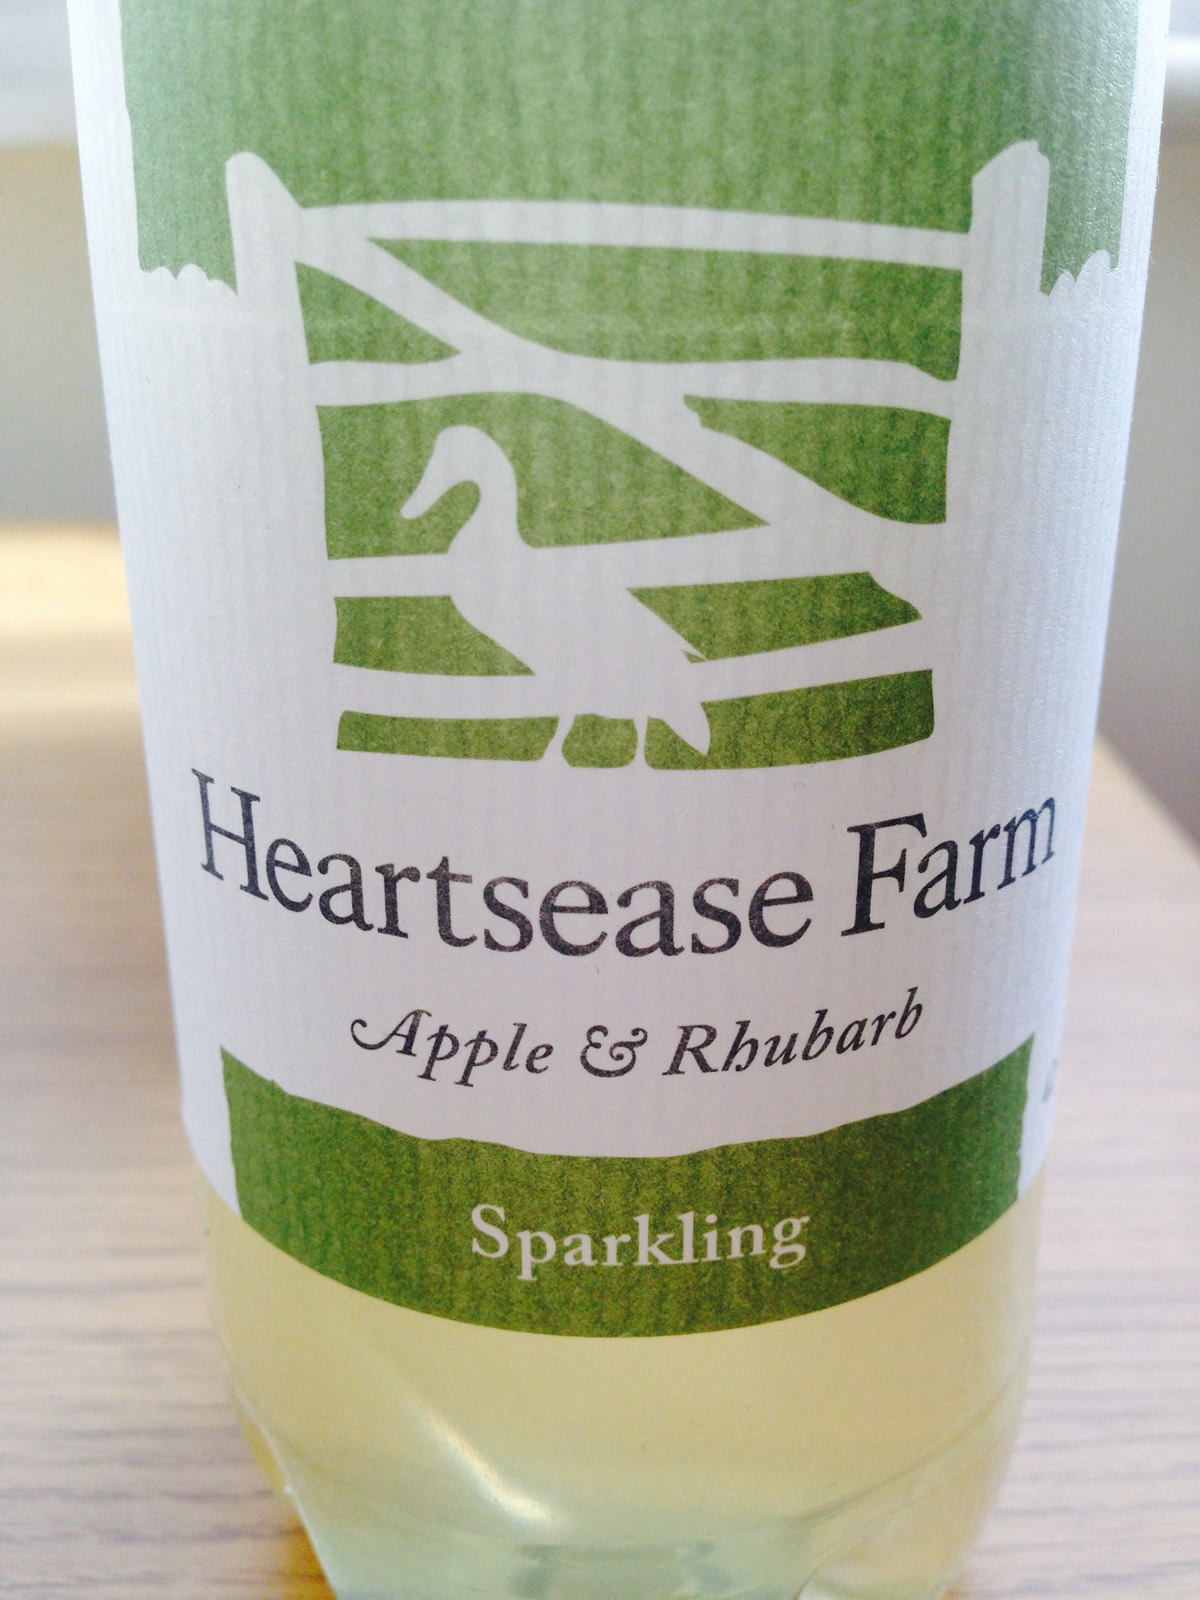 Heartsease Farm Apple Rhubarb